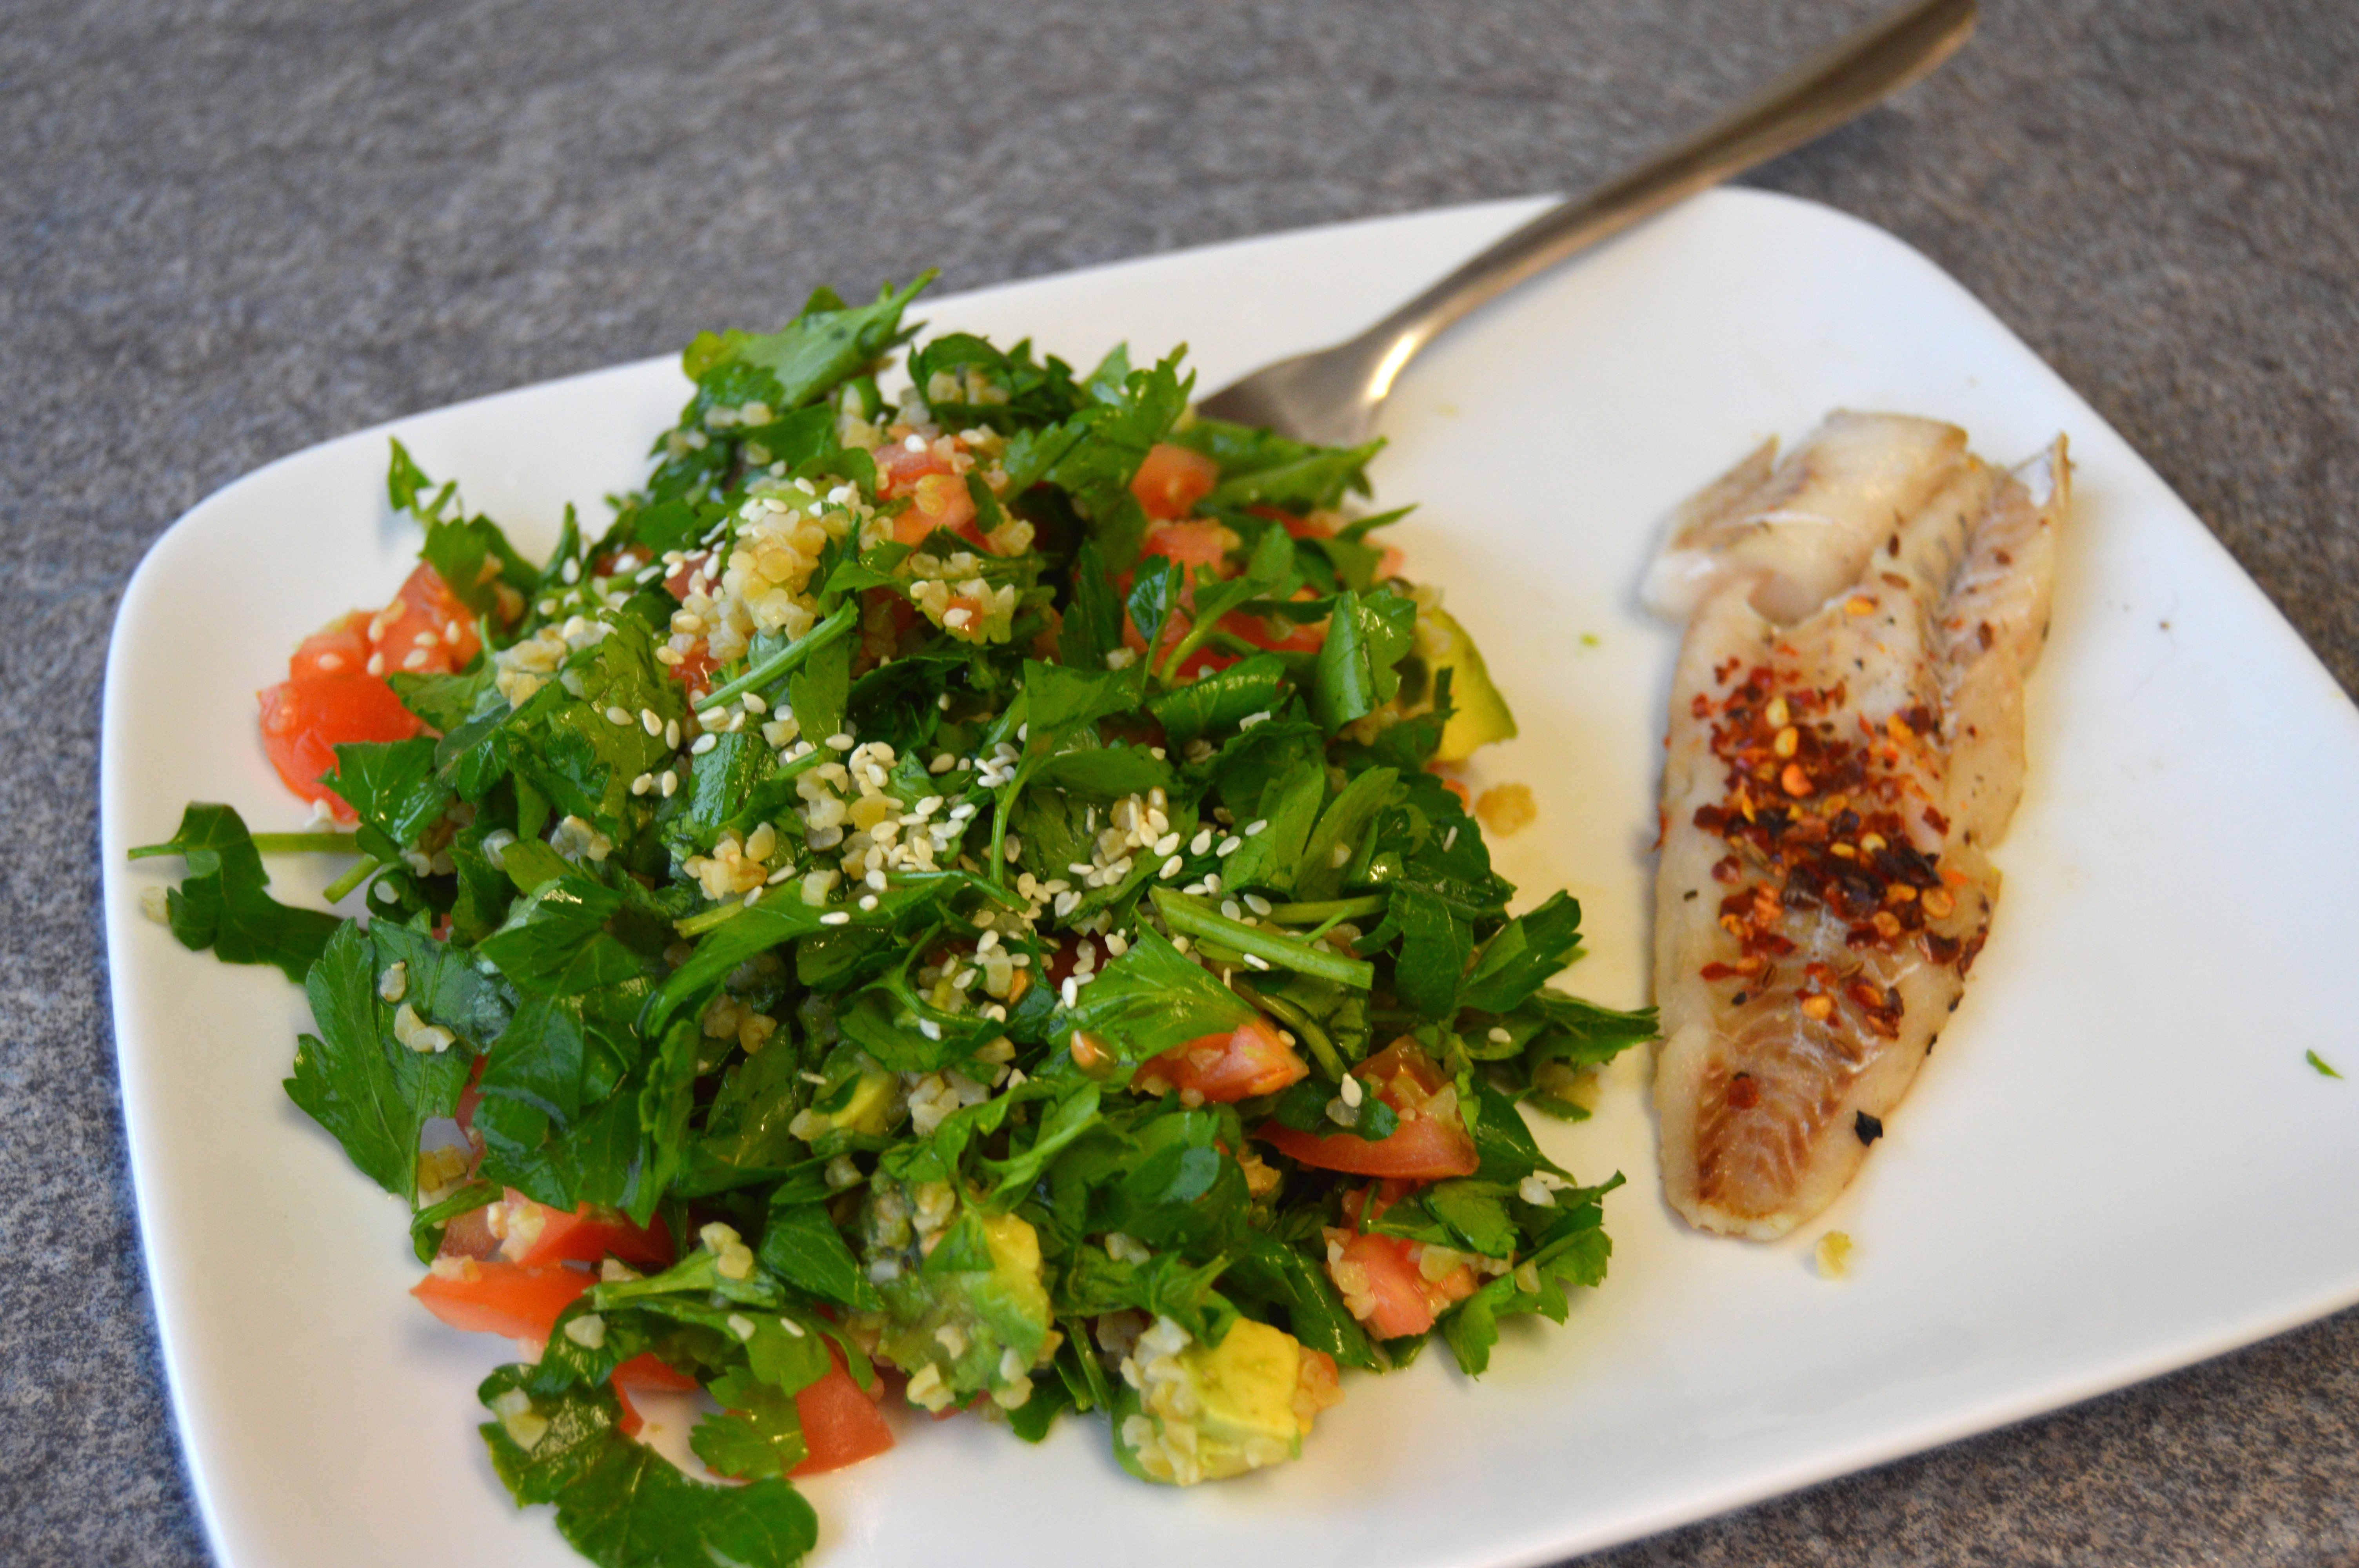 quick-and-simple healthy-meals.jpg